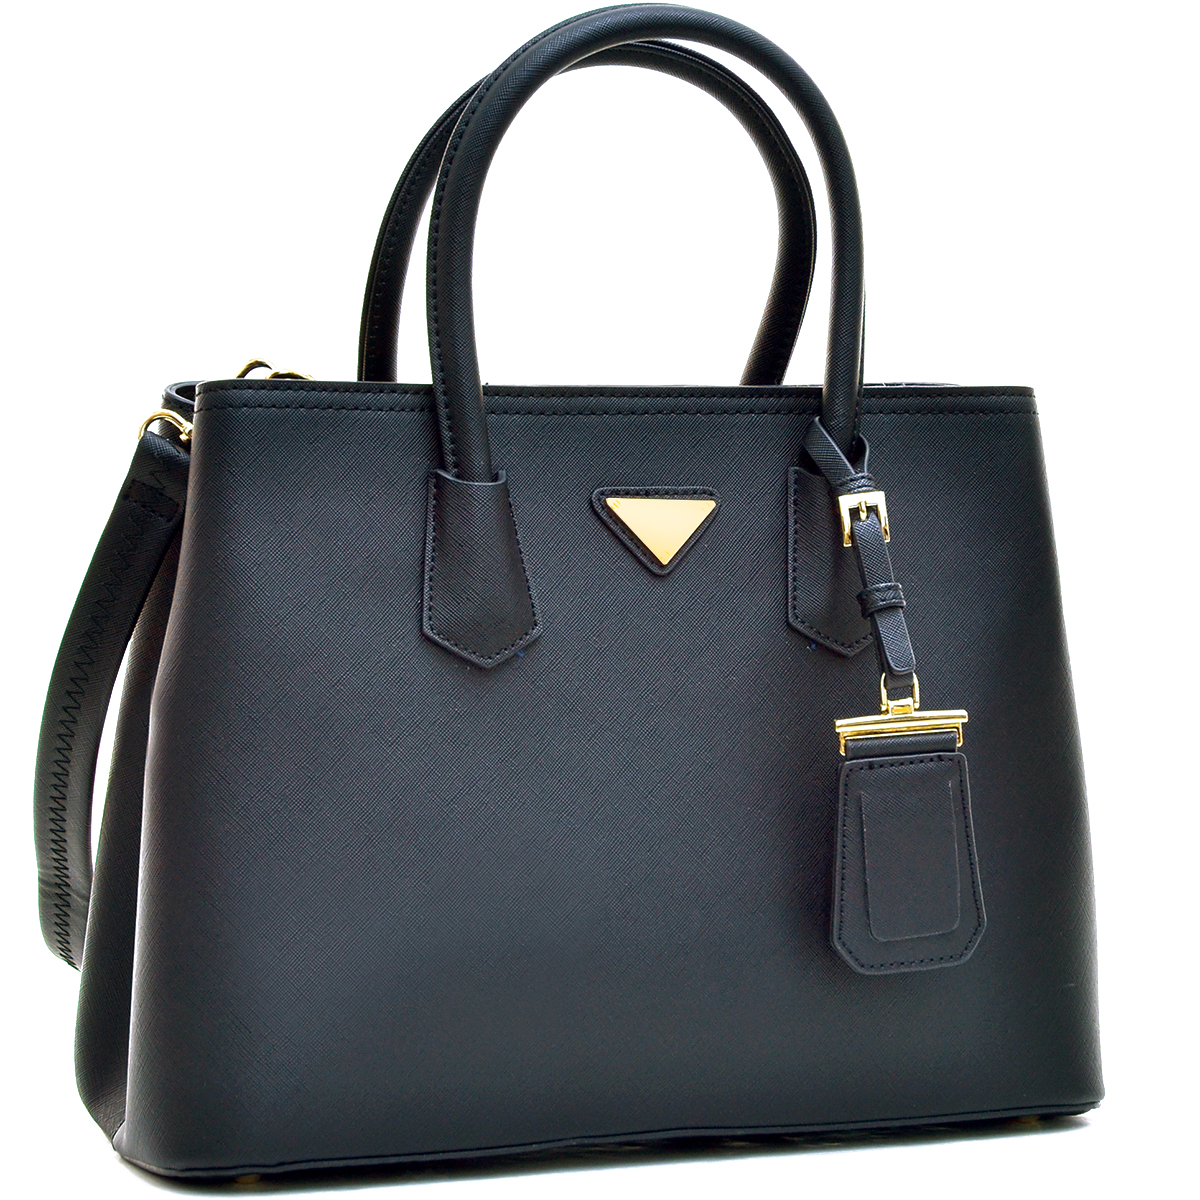 Saffiano Leather Medium Satchel with ID Tag